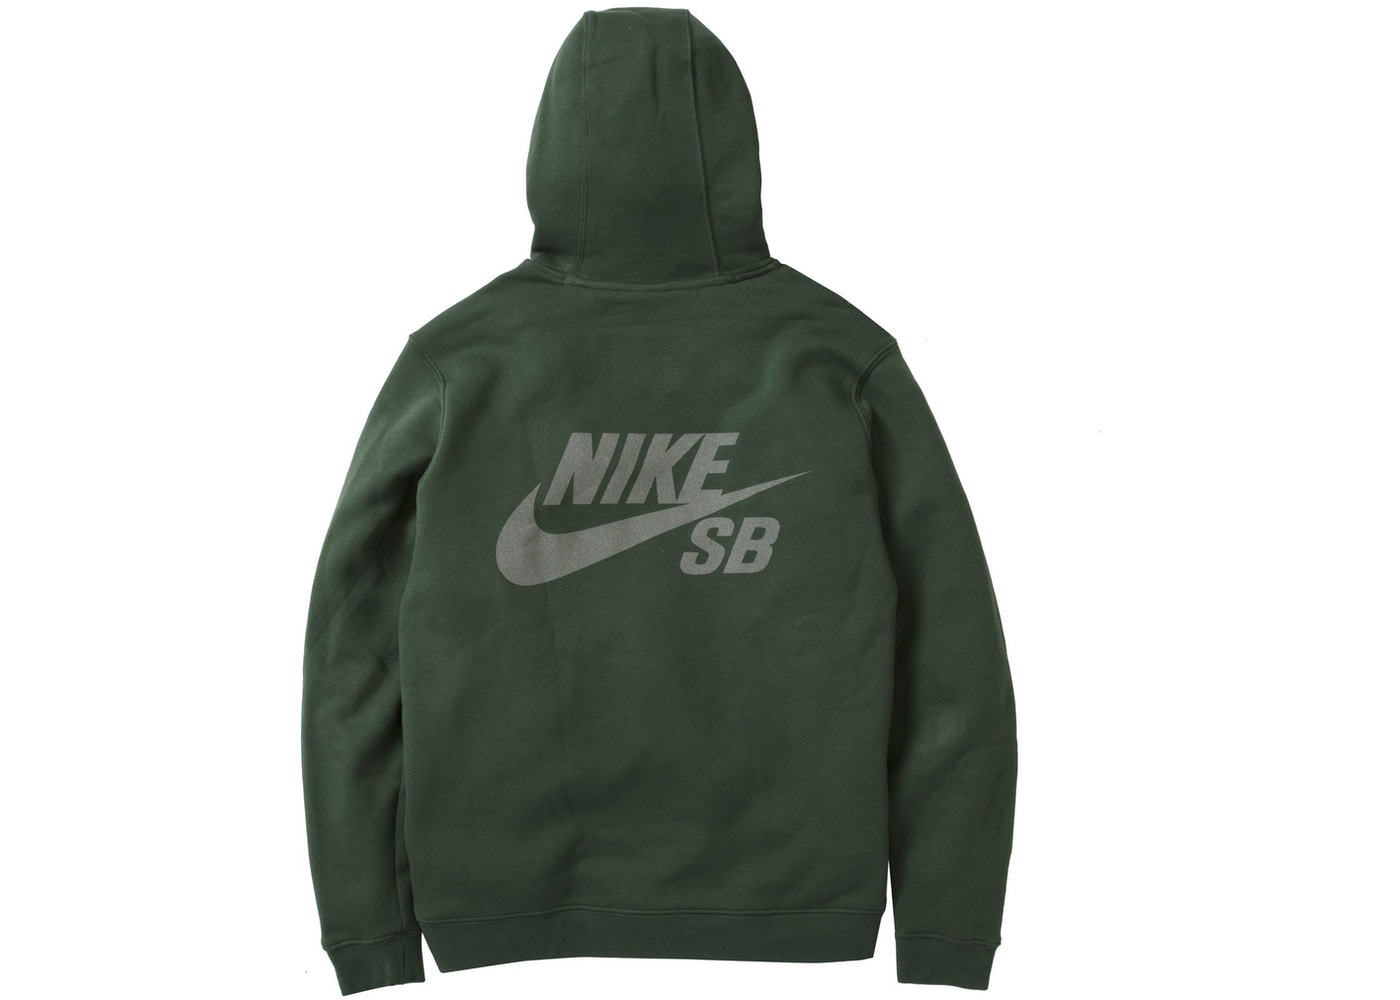 10c373a7c1a6 Buy   Sell Nike Apparel Streetwear - Highest Bid